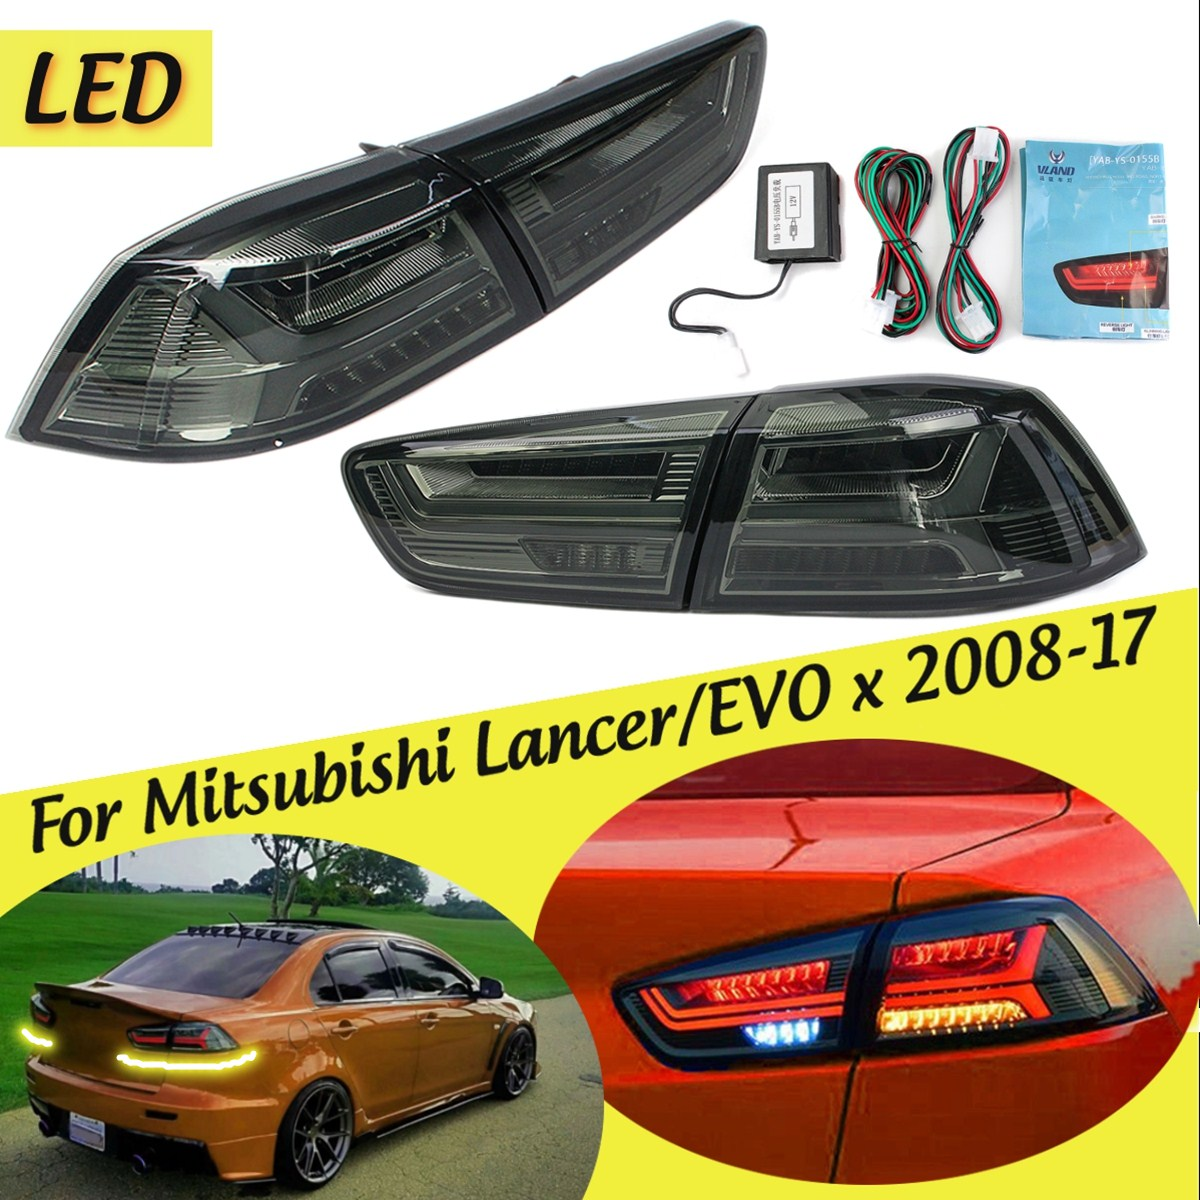 1 Pair for Mitsubishi Lancer/EVOx2008-2017 Rear LED Tail Brake Light Lamps Tail Light Signal LED DRL Stop Rear Lamp Accessories